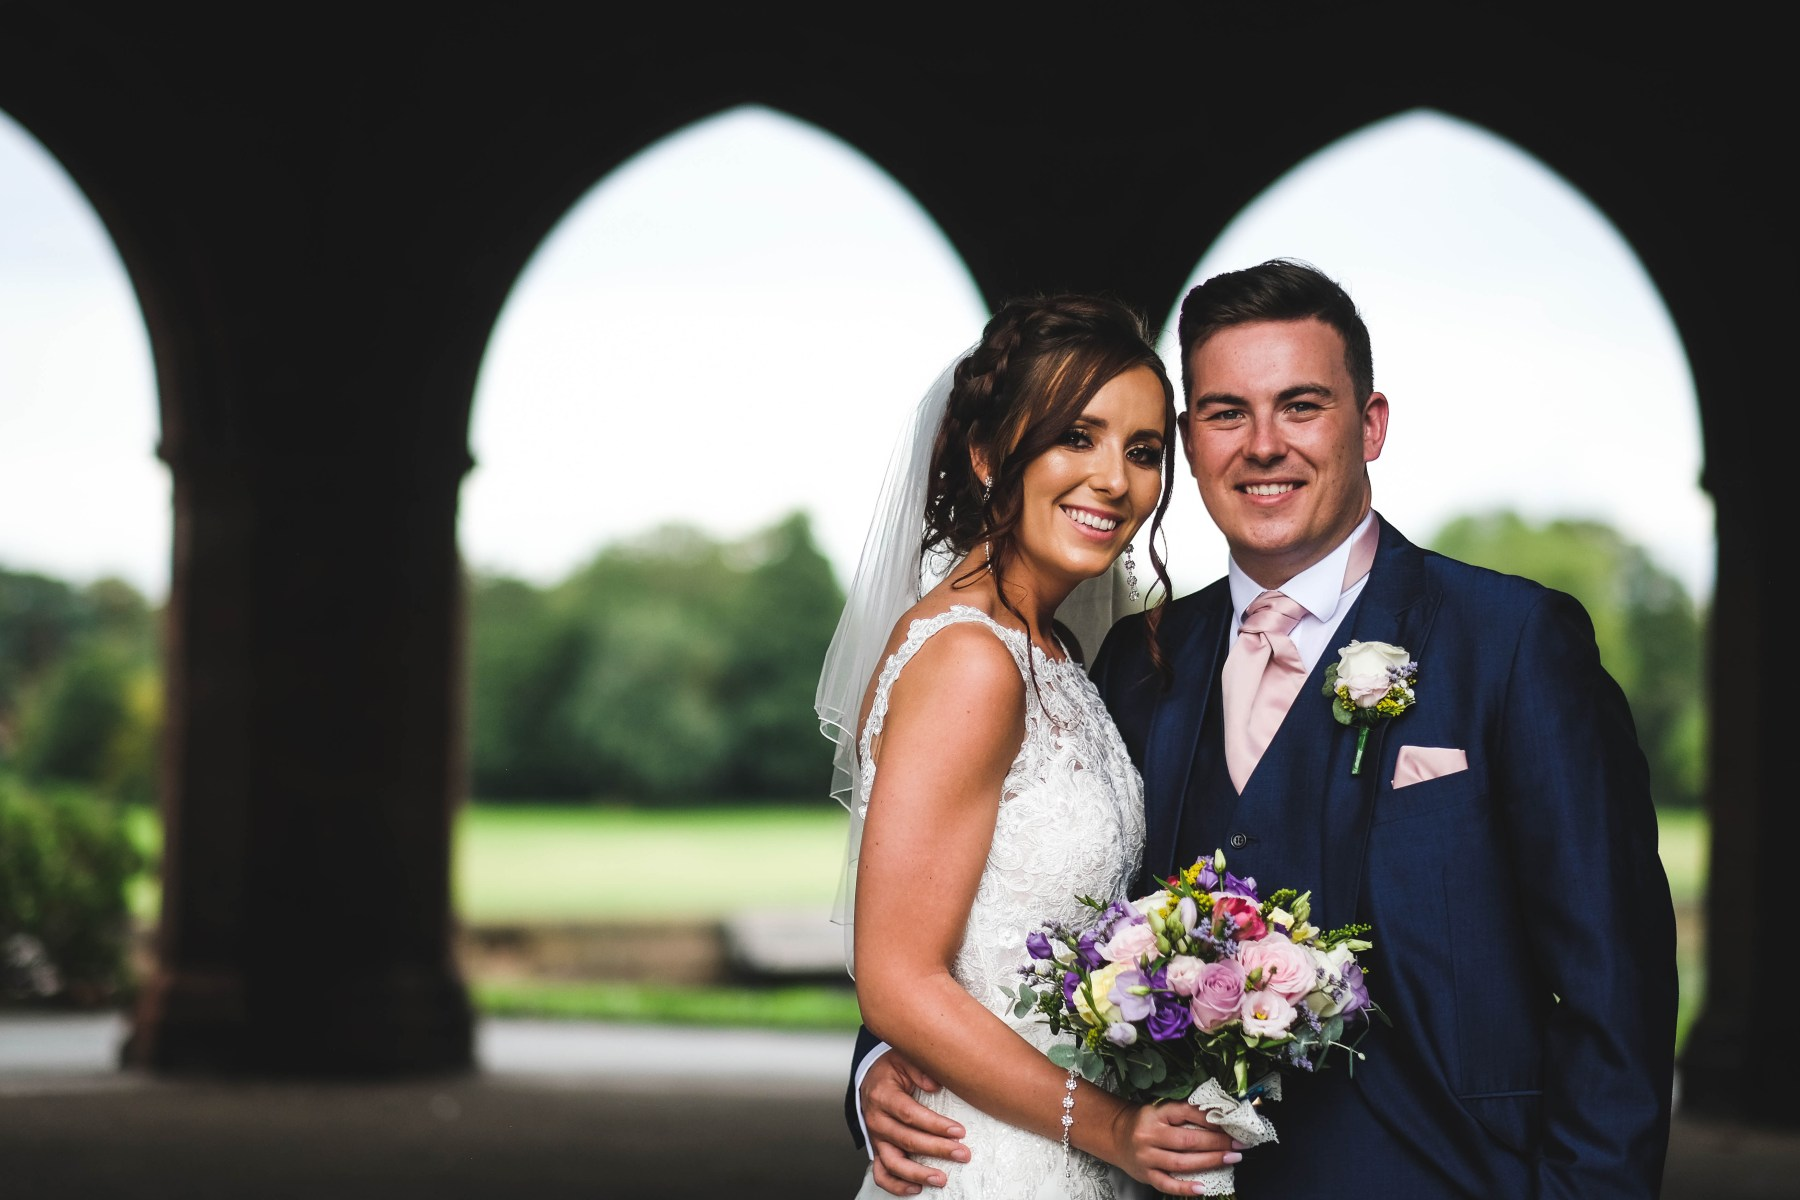 Wedding photographers in Liverpool